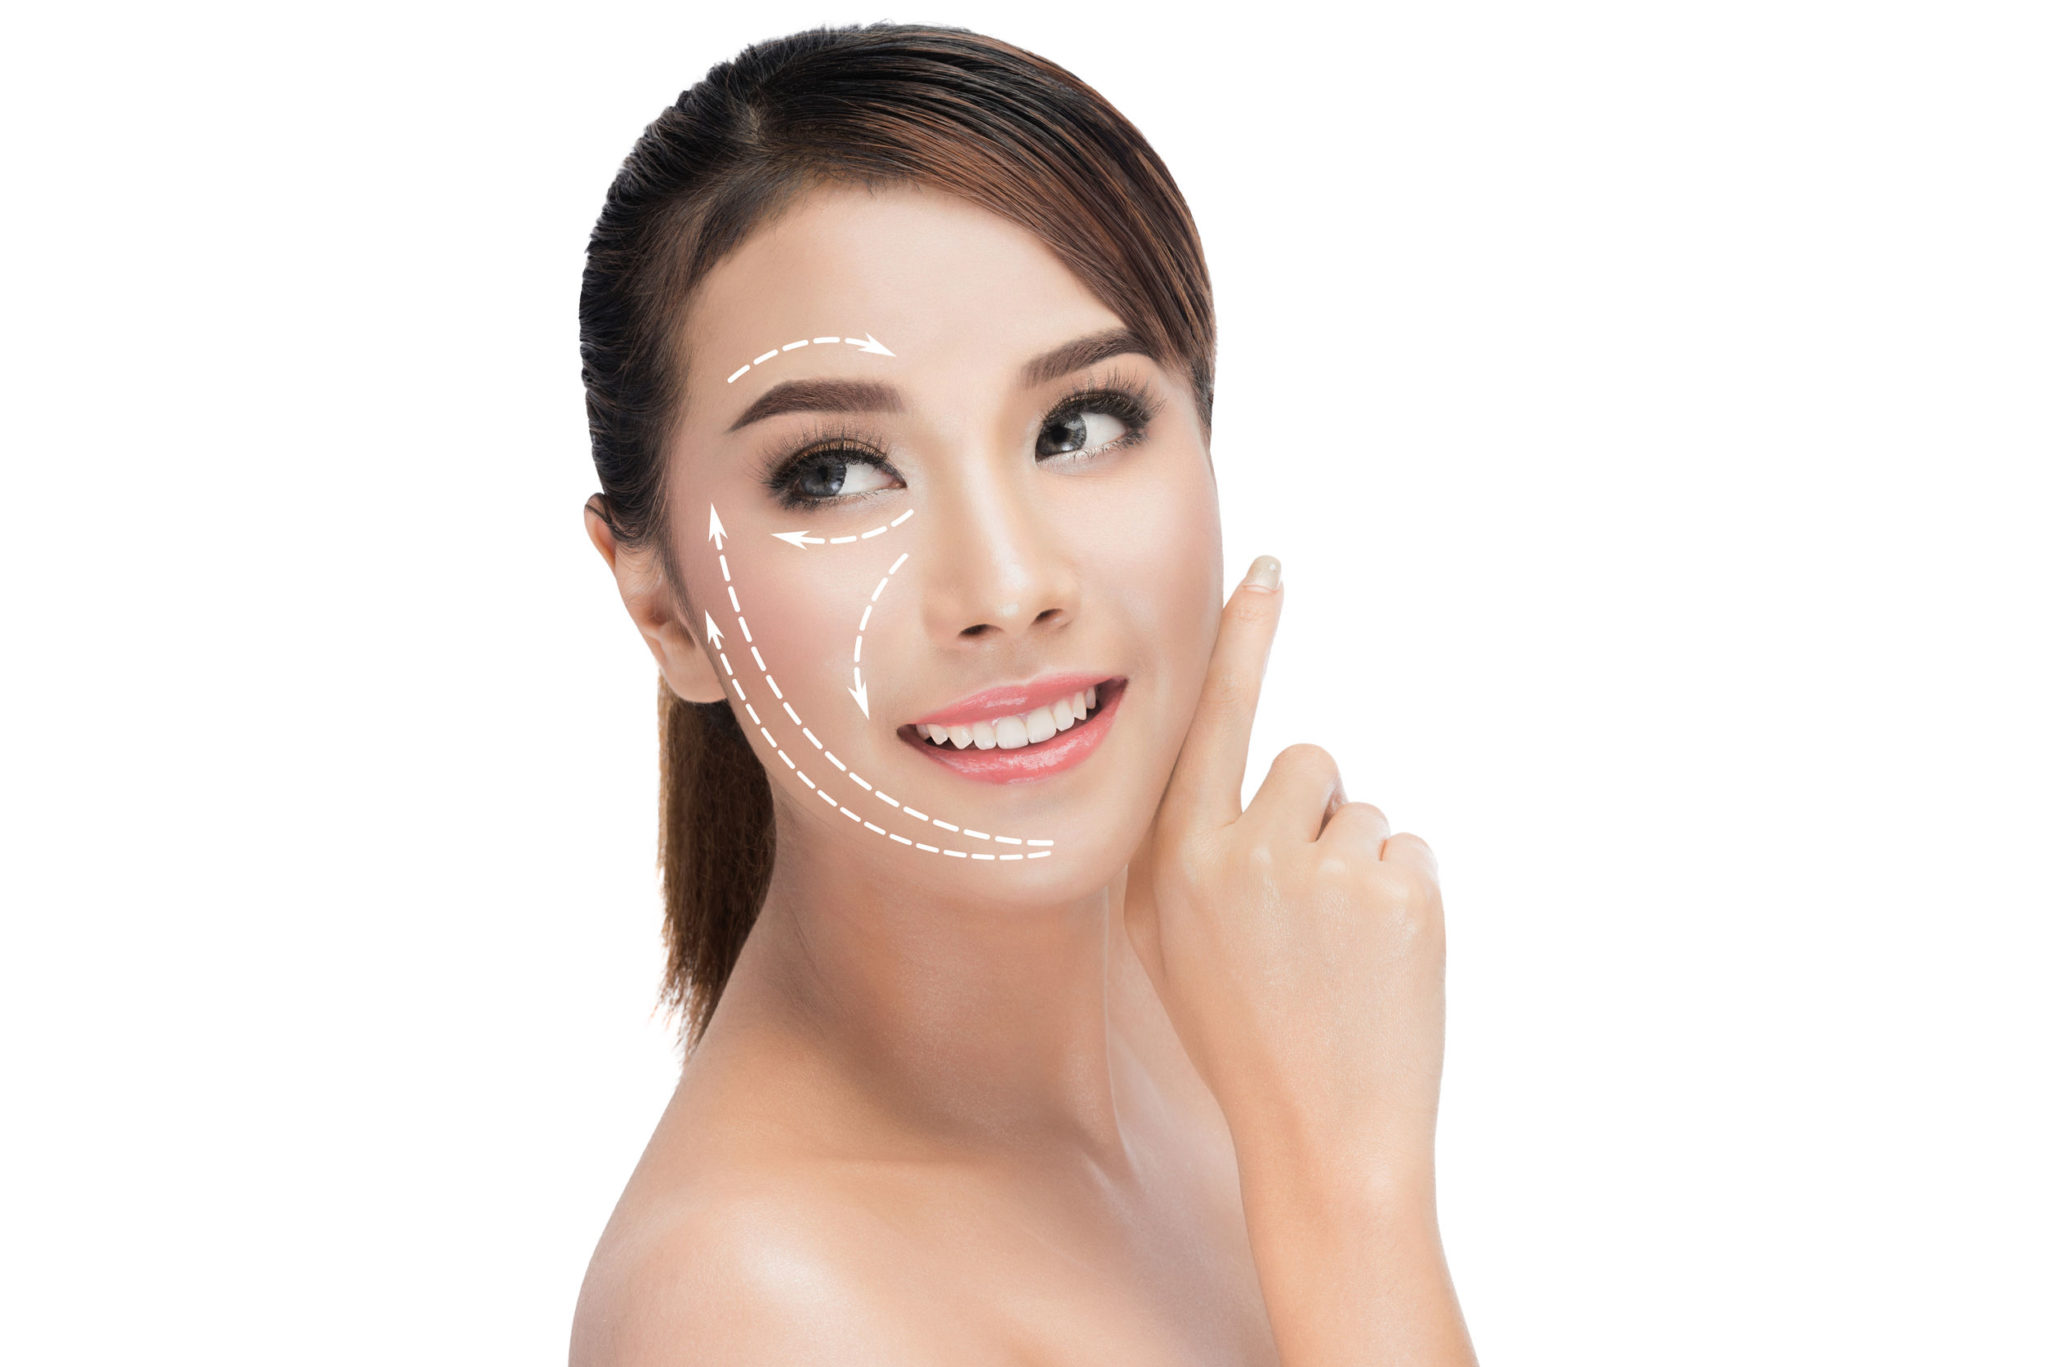 Subtracting Years From Your Face With Facial Liposuction